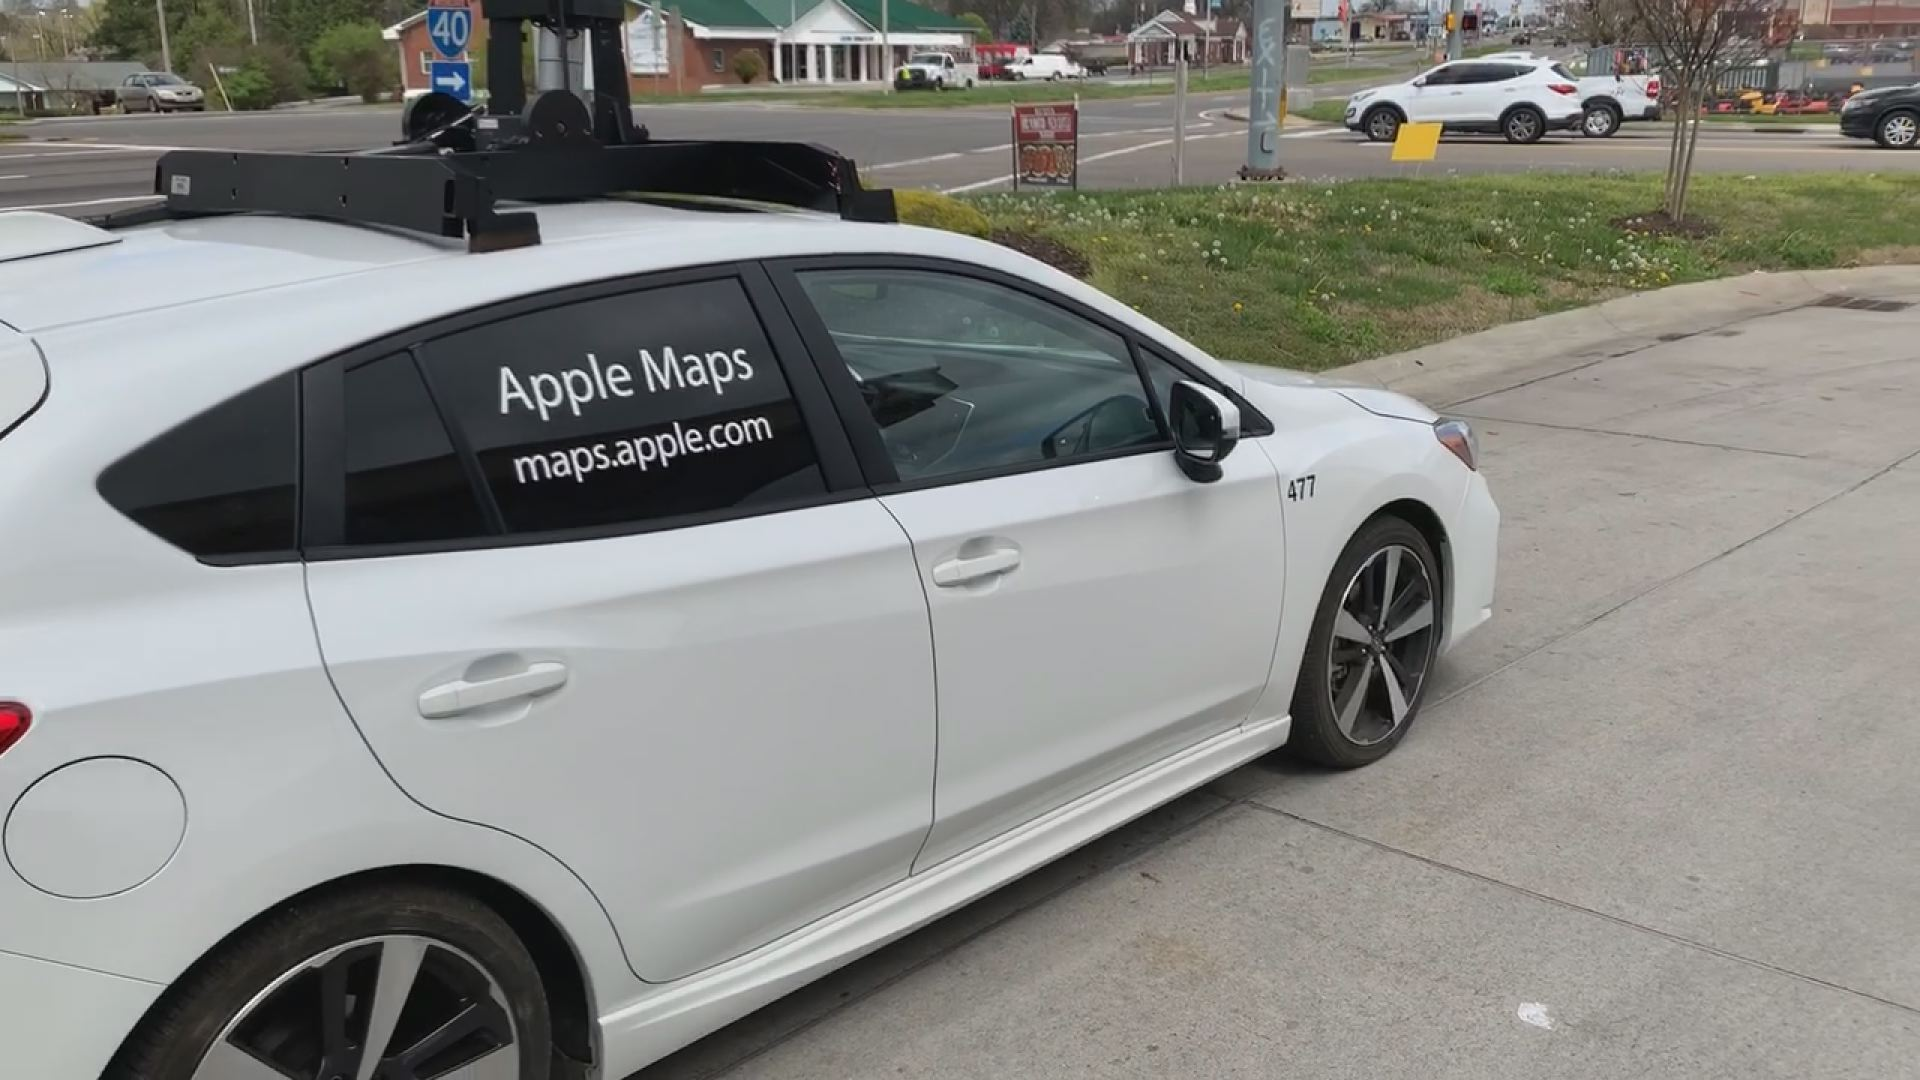 How Apple Maps is Changing - What the Tech?